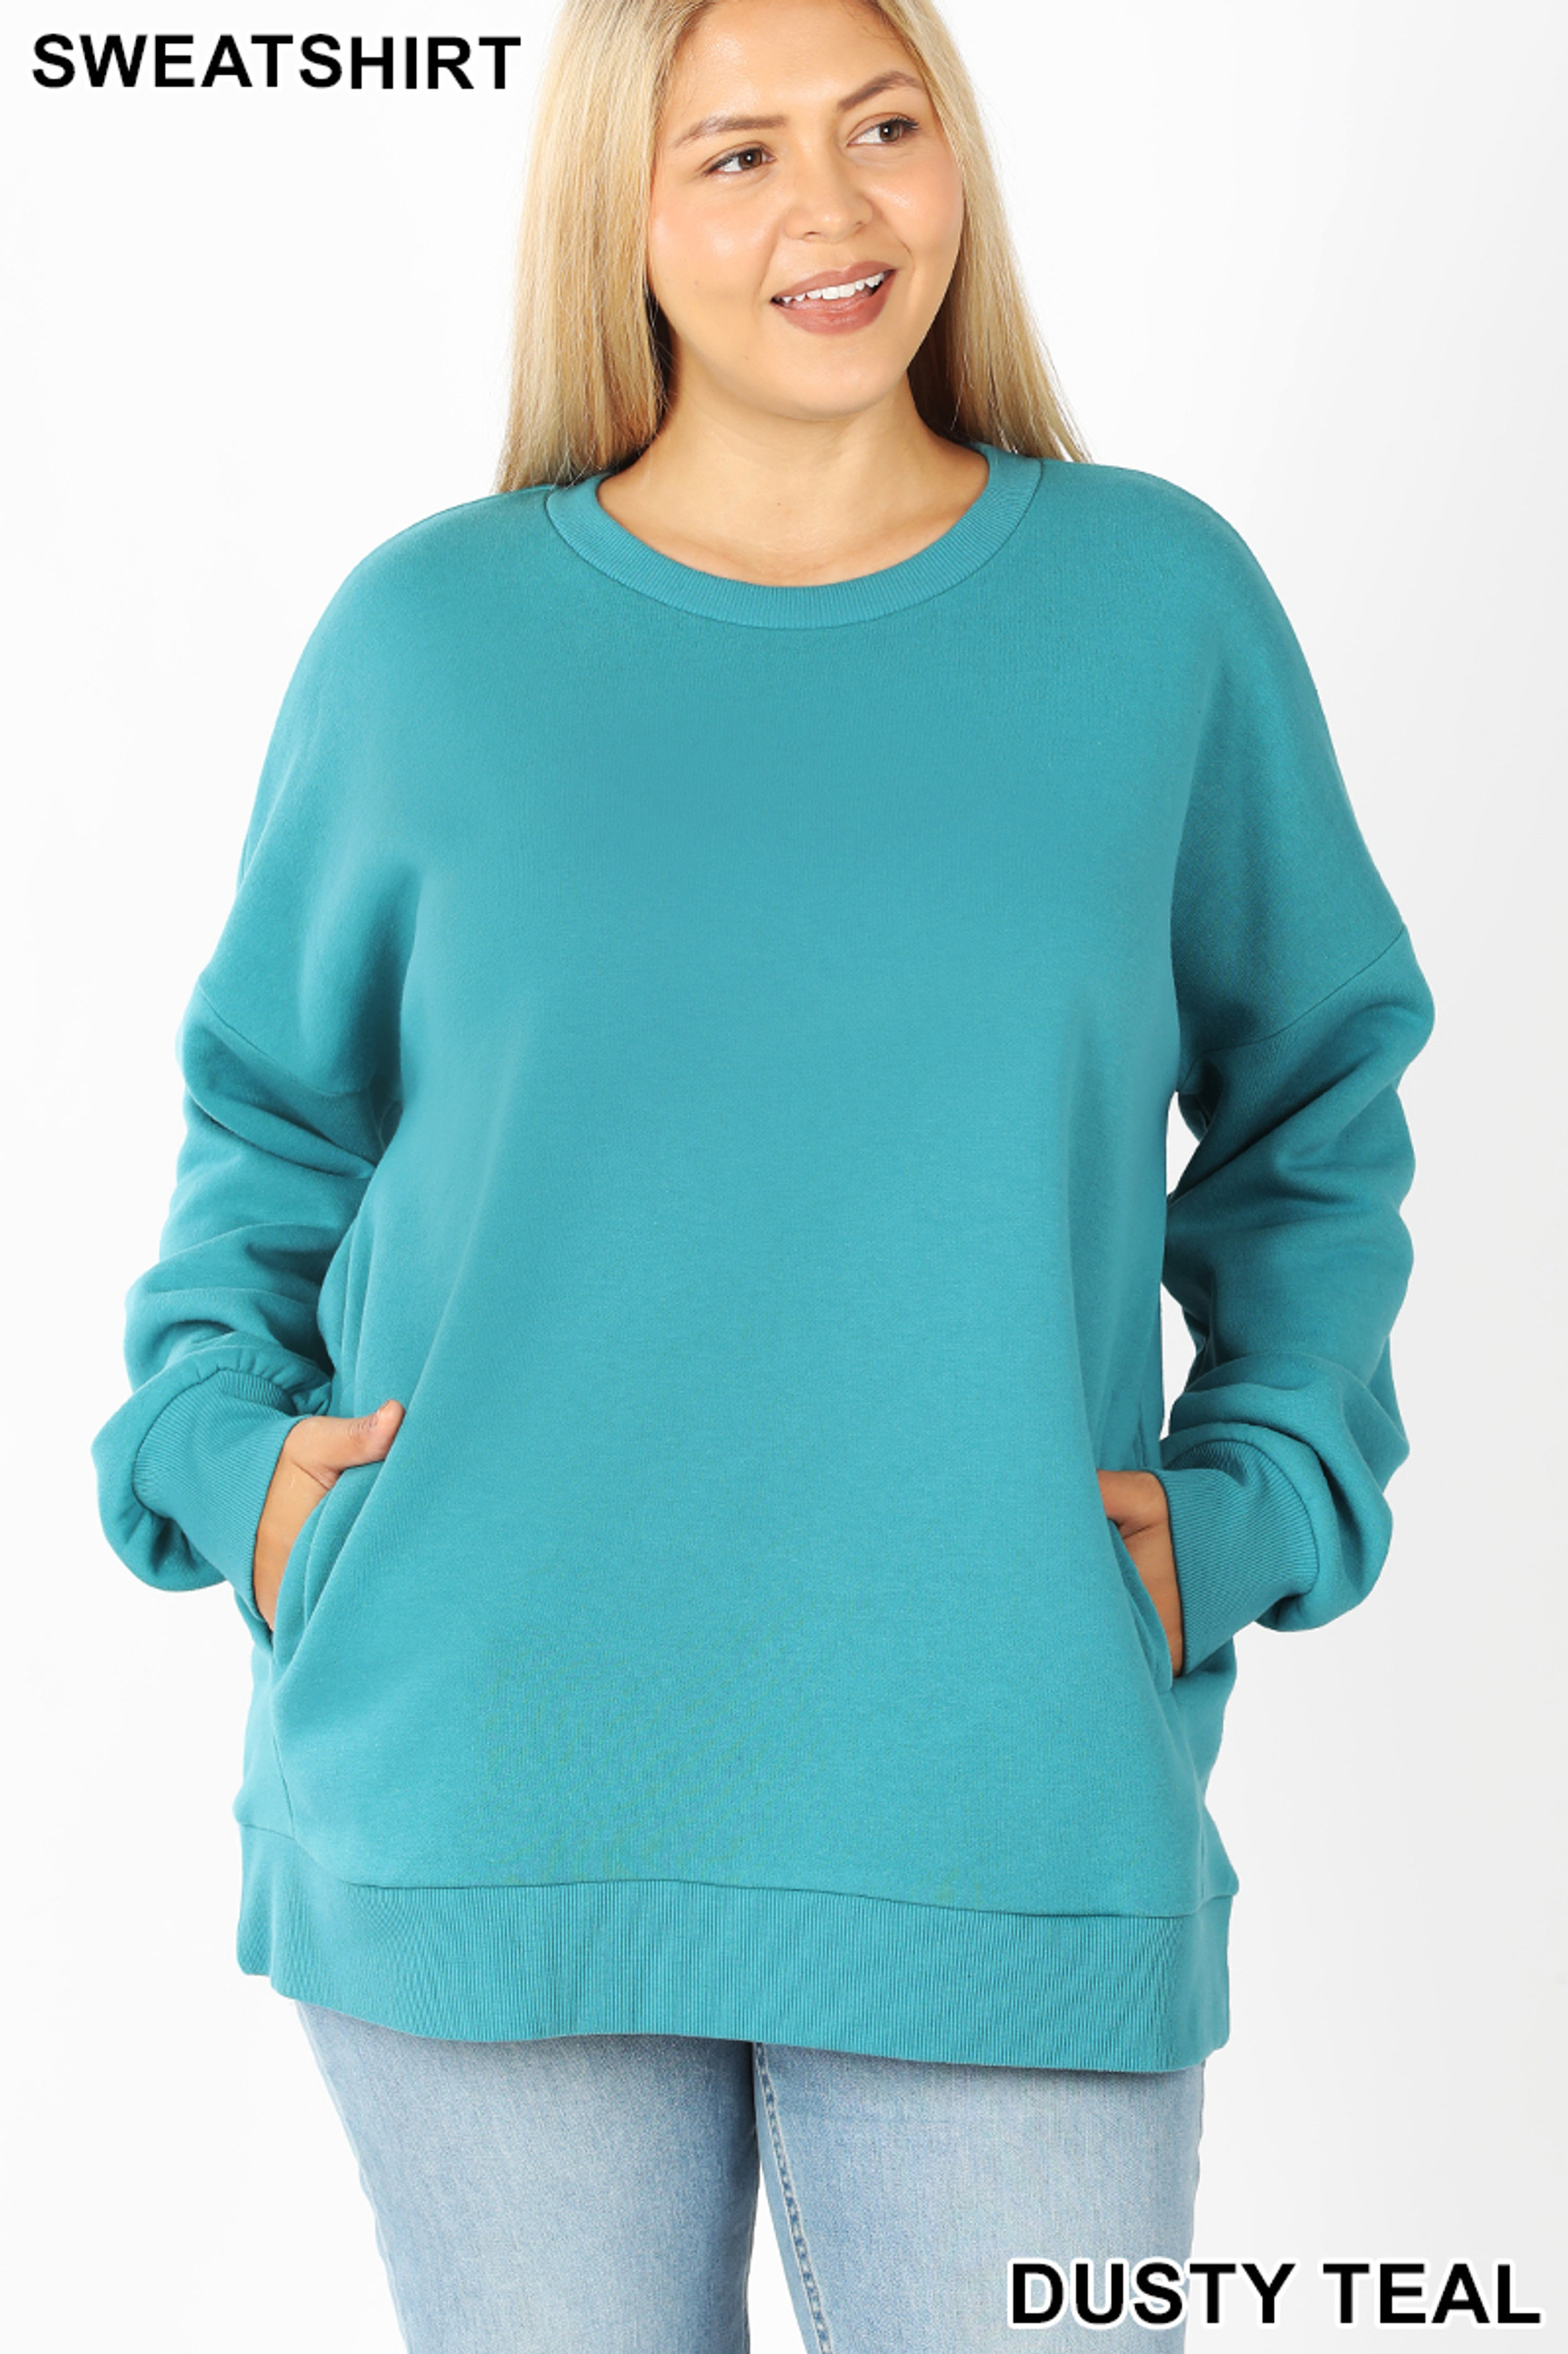 Front image of Dusty Teal Cotton Round Crew Neck Plus Size Sweatshirt with Side Pockets